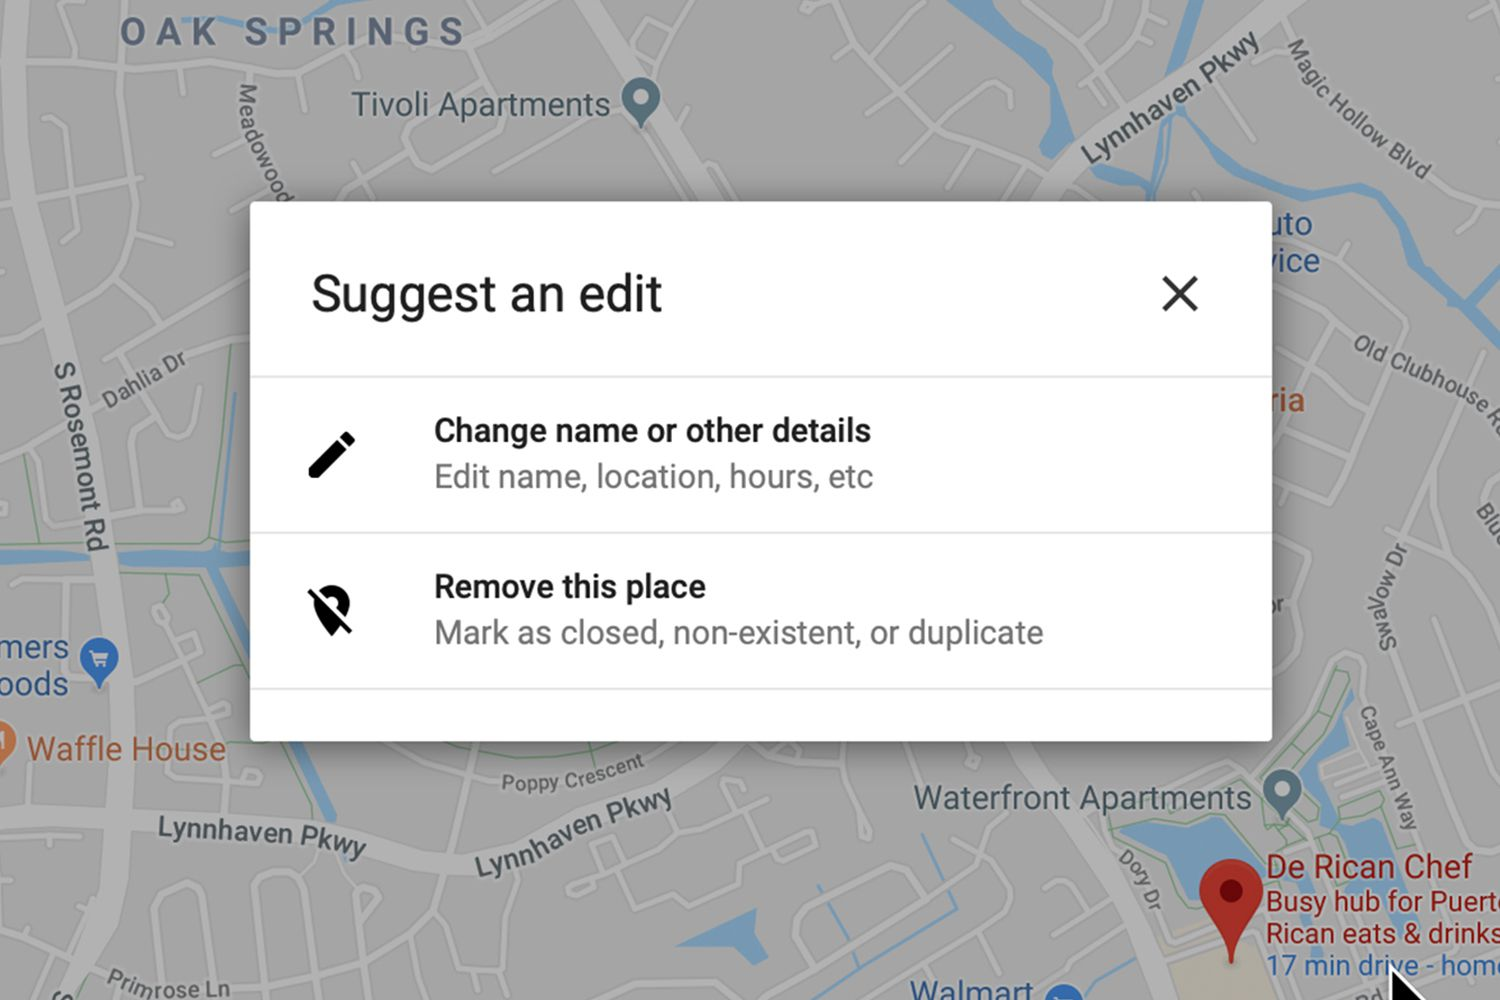 How to Edit a Location in Google Maps